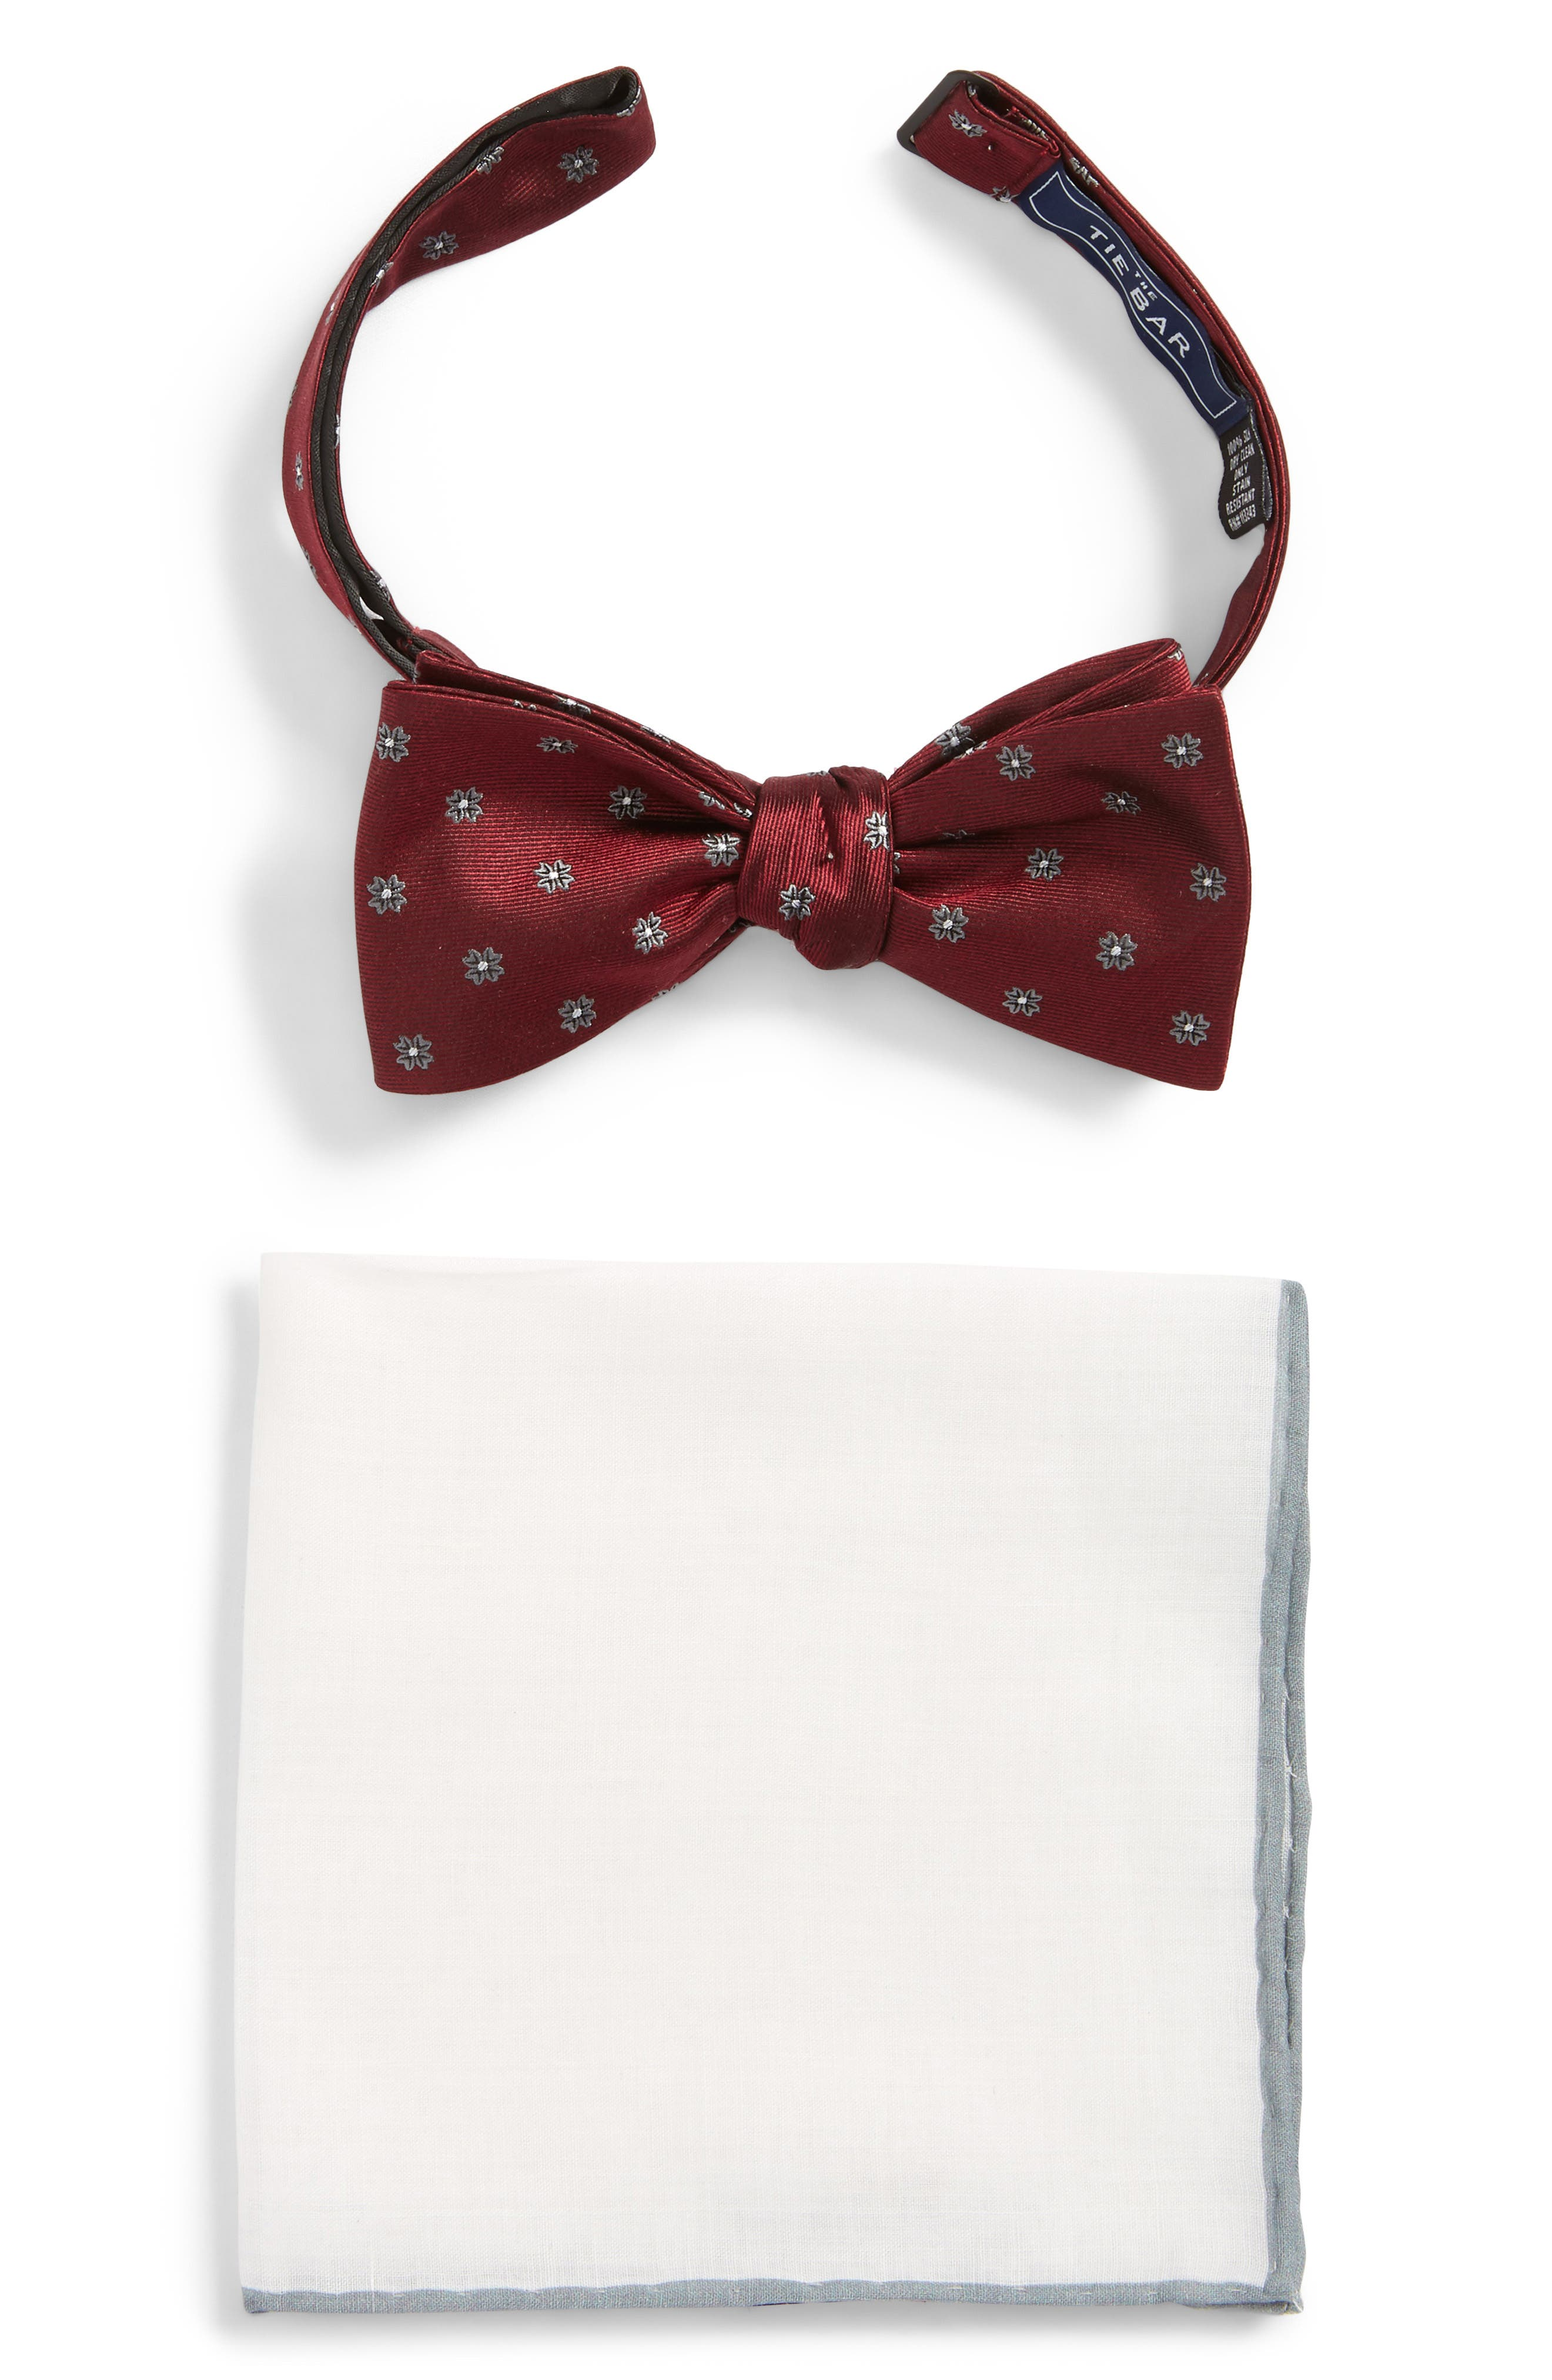 Alternate Image 1 Selected - The Tie Bar Bow Tie & Pocket Square Box Set